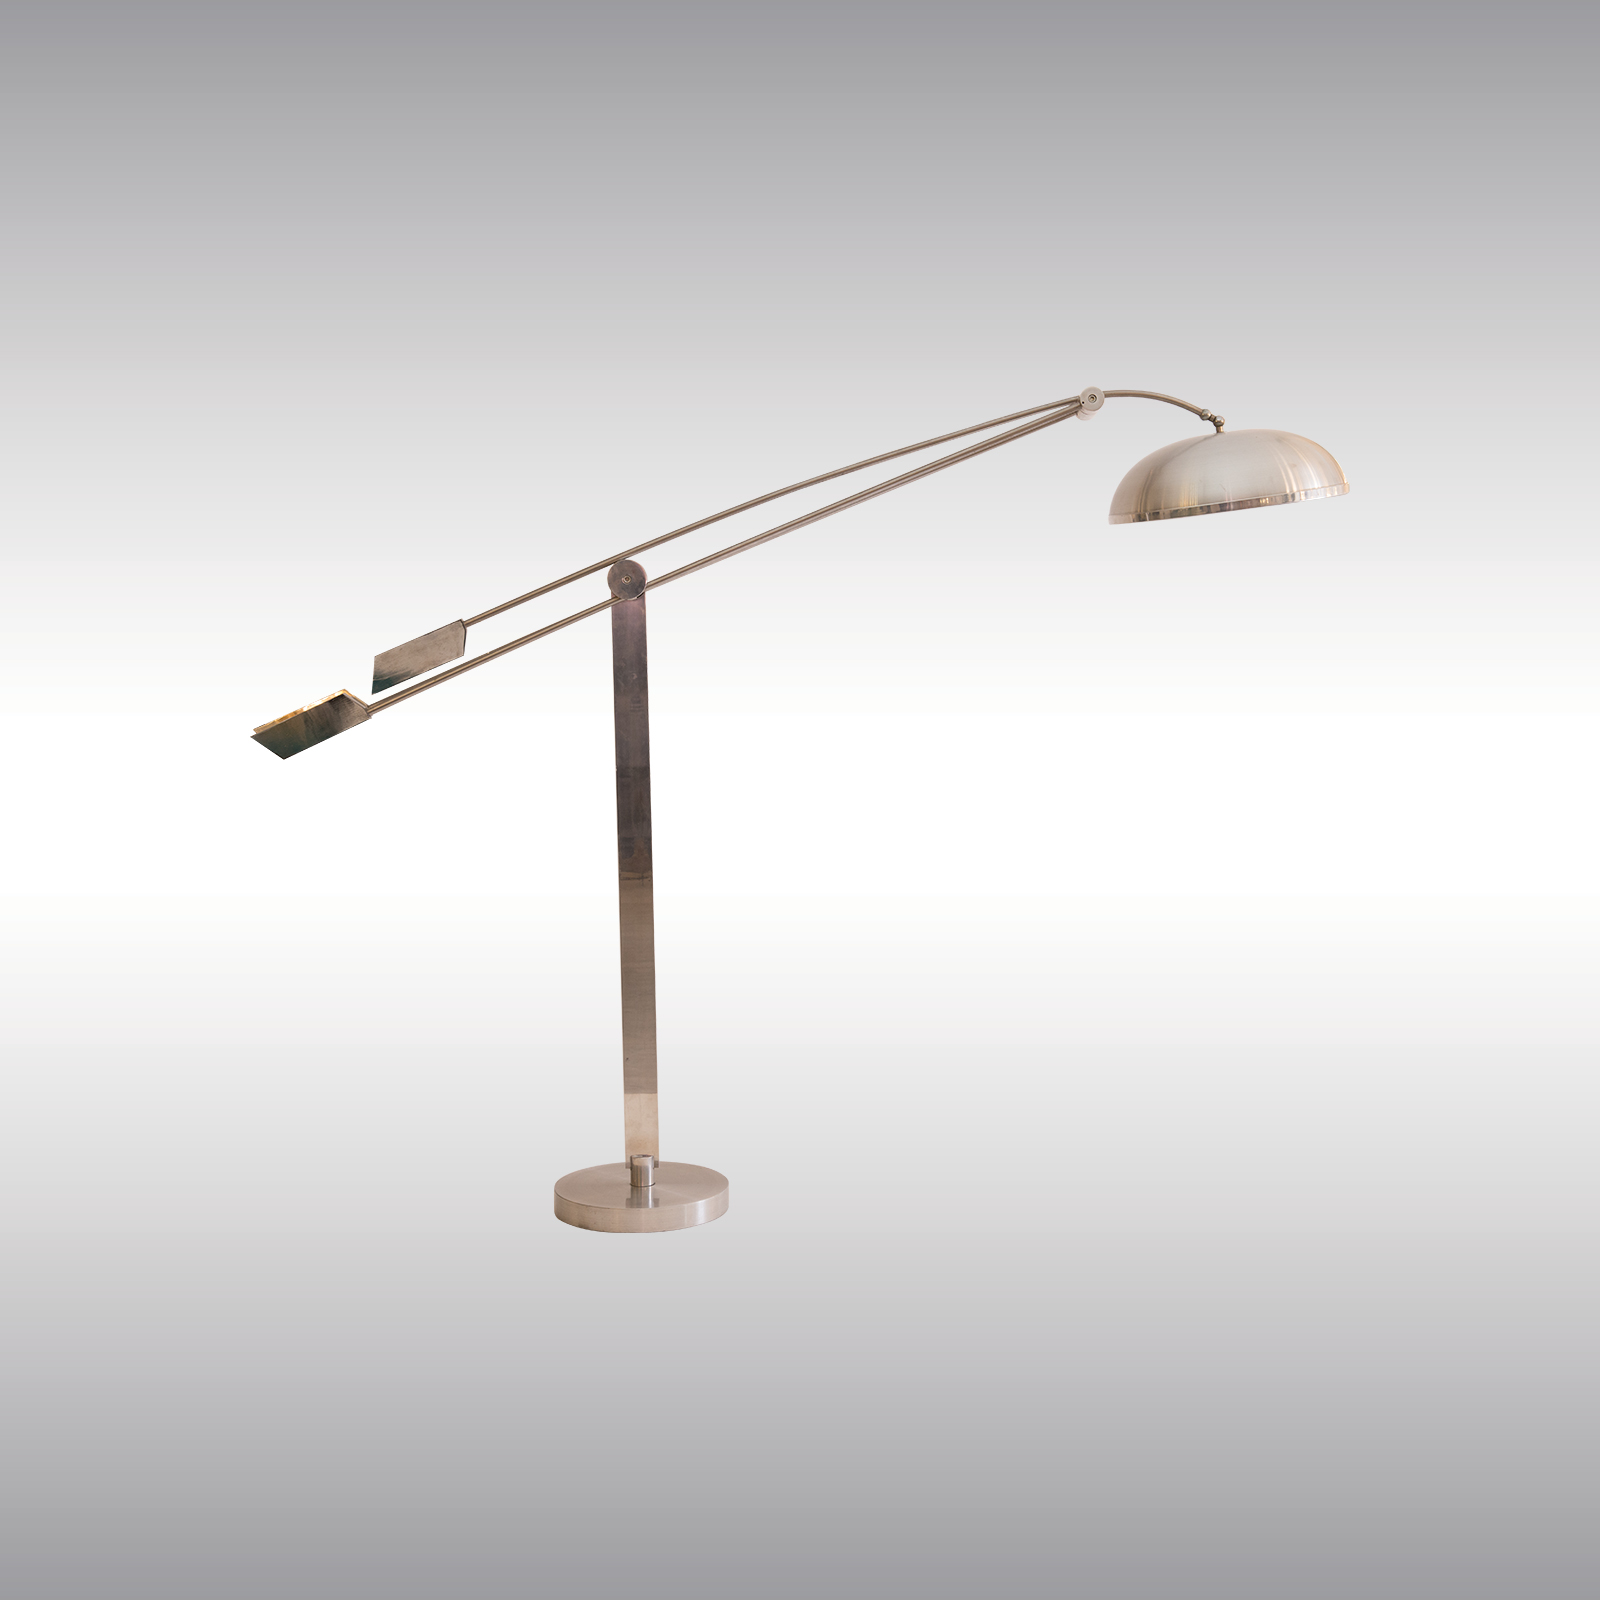 Machine Age Period Bauhaus Style Floor Lamp